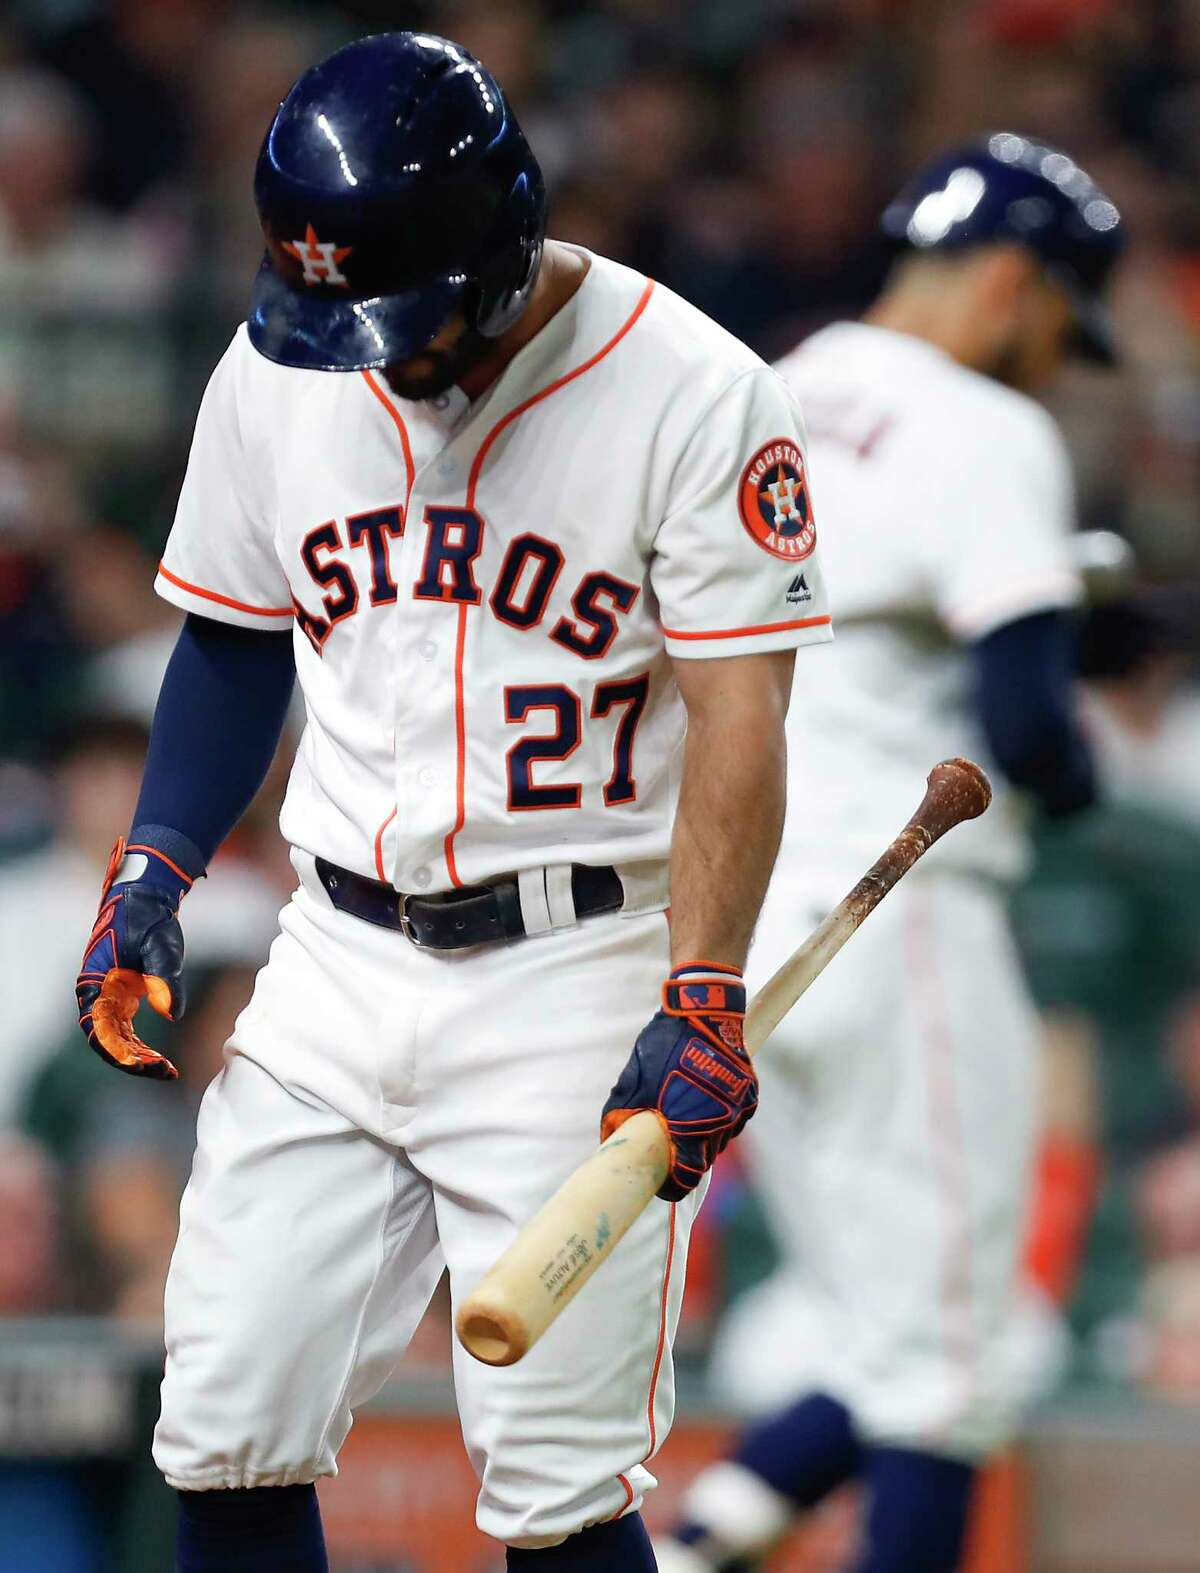 Houston Astros second baseman Jose Altuve (27) walks back to the dugout after he is called out on strikes against the Toronto Blue Jays during the seventh inning of a major league baseball game at Minute Maid Park on Monday, June 25, 2018, in Houston.